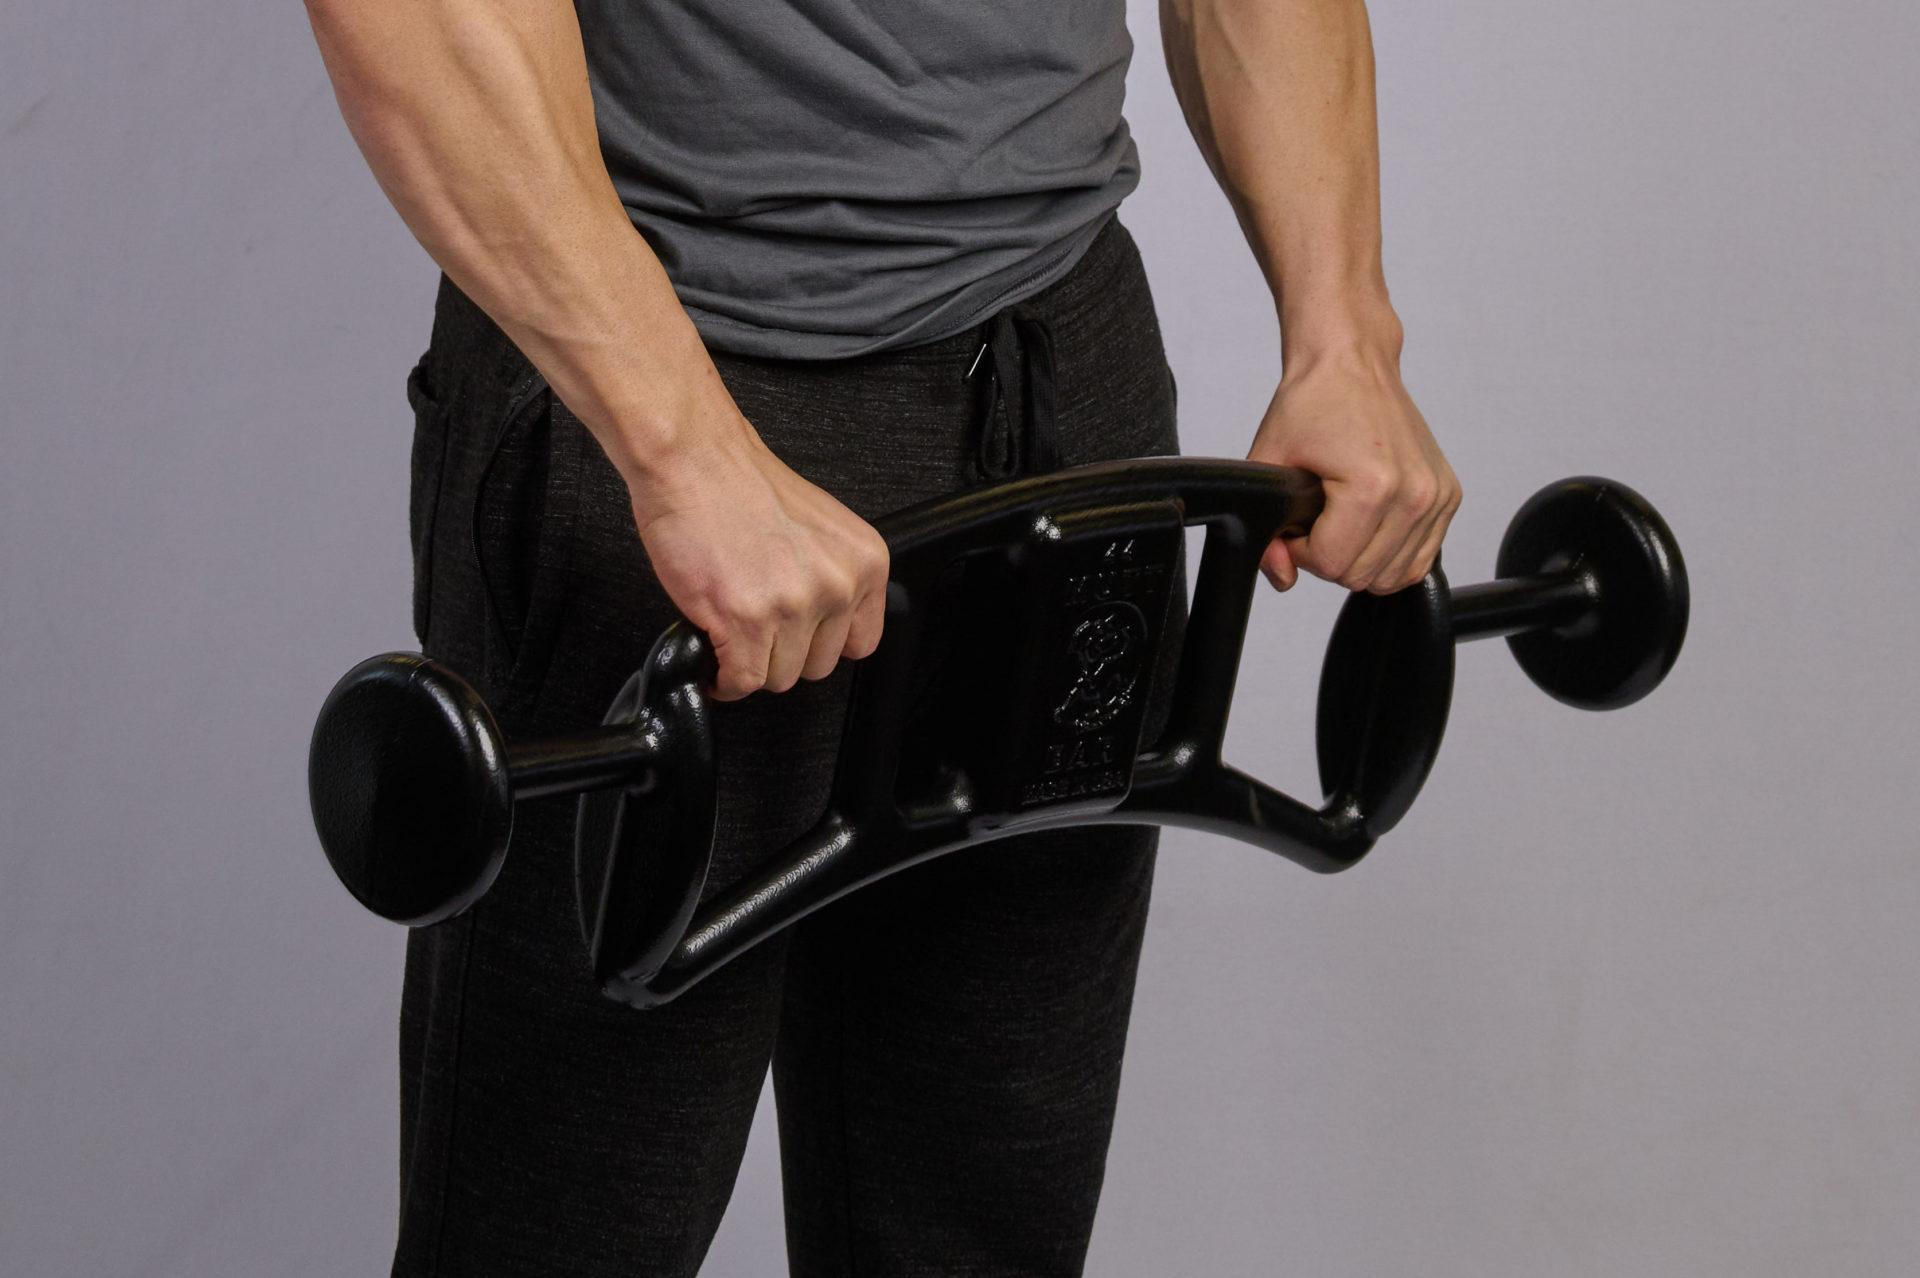 Front Raises with 44lb MUTT Bar - MUTT Made in USA